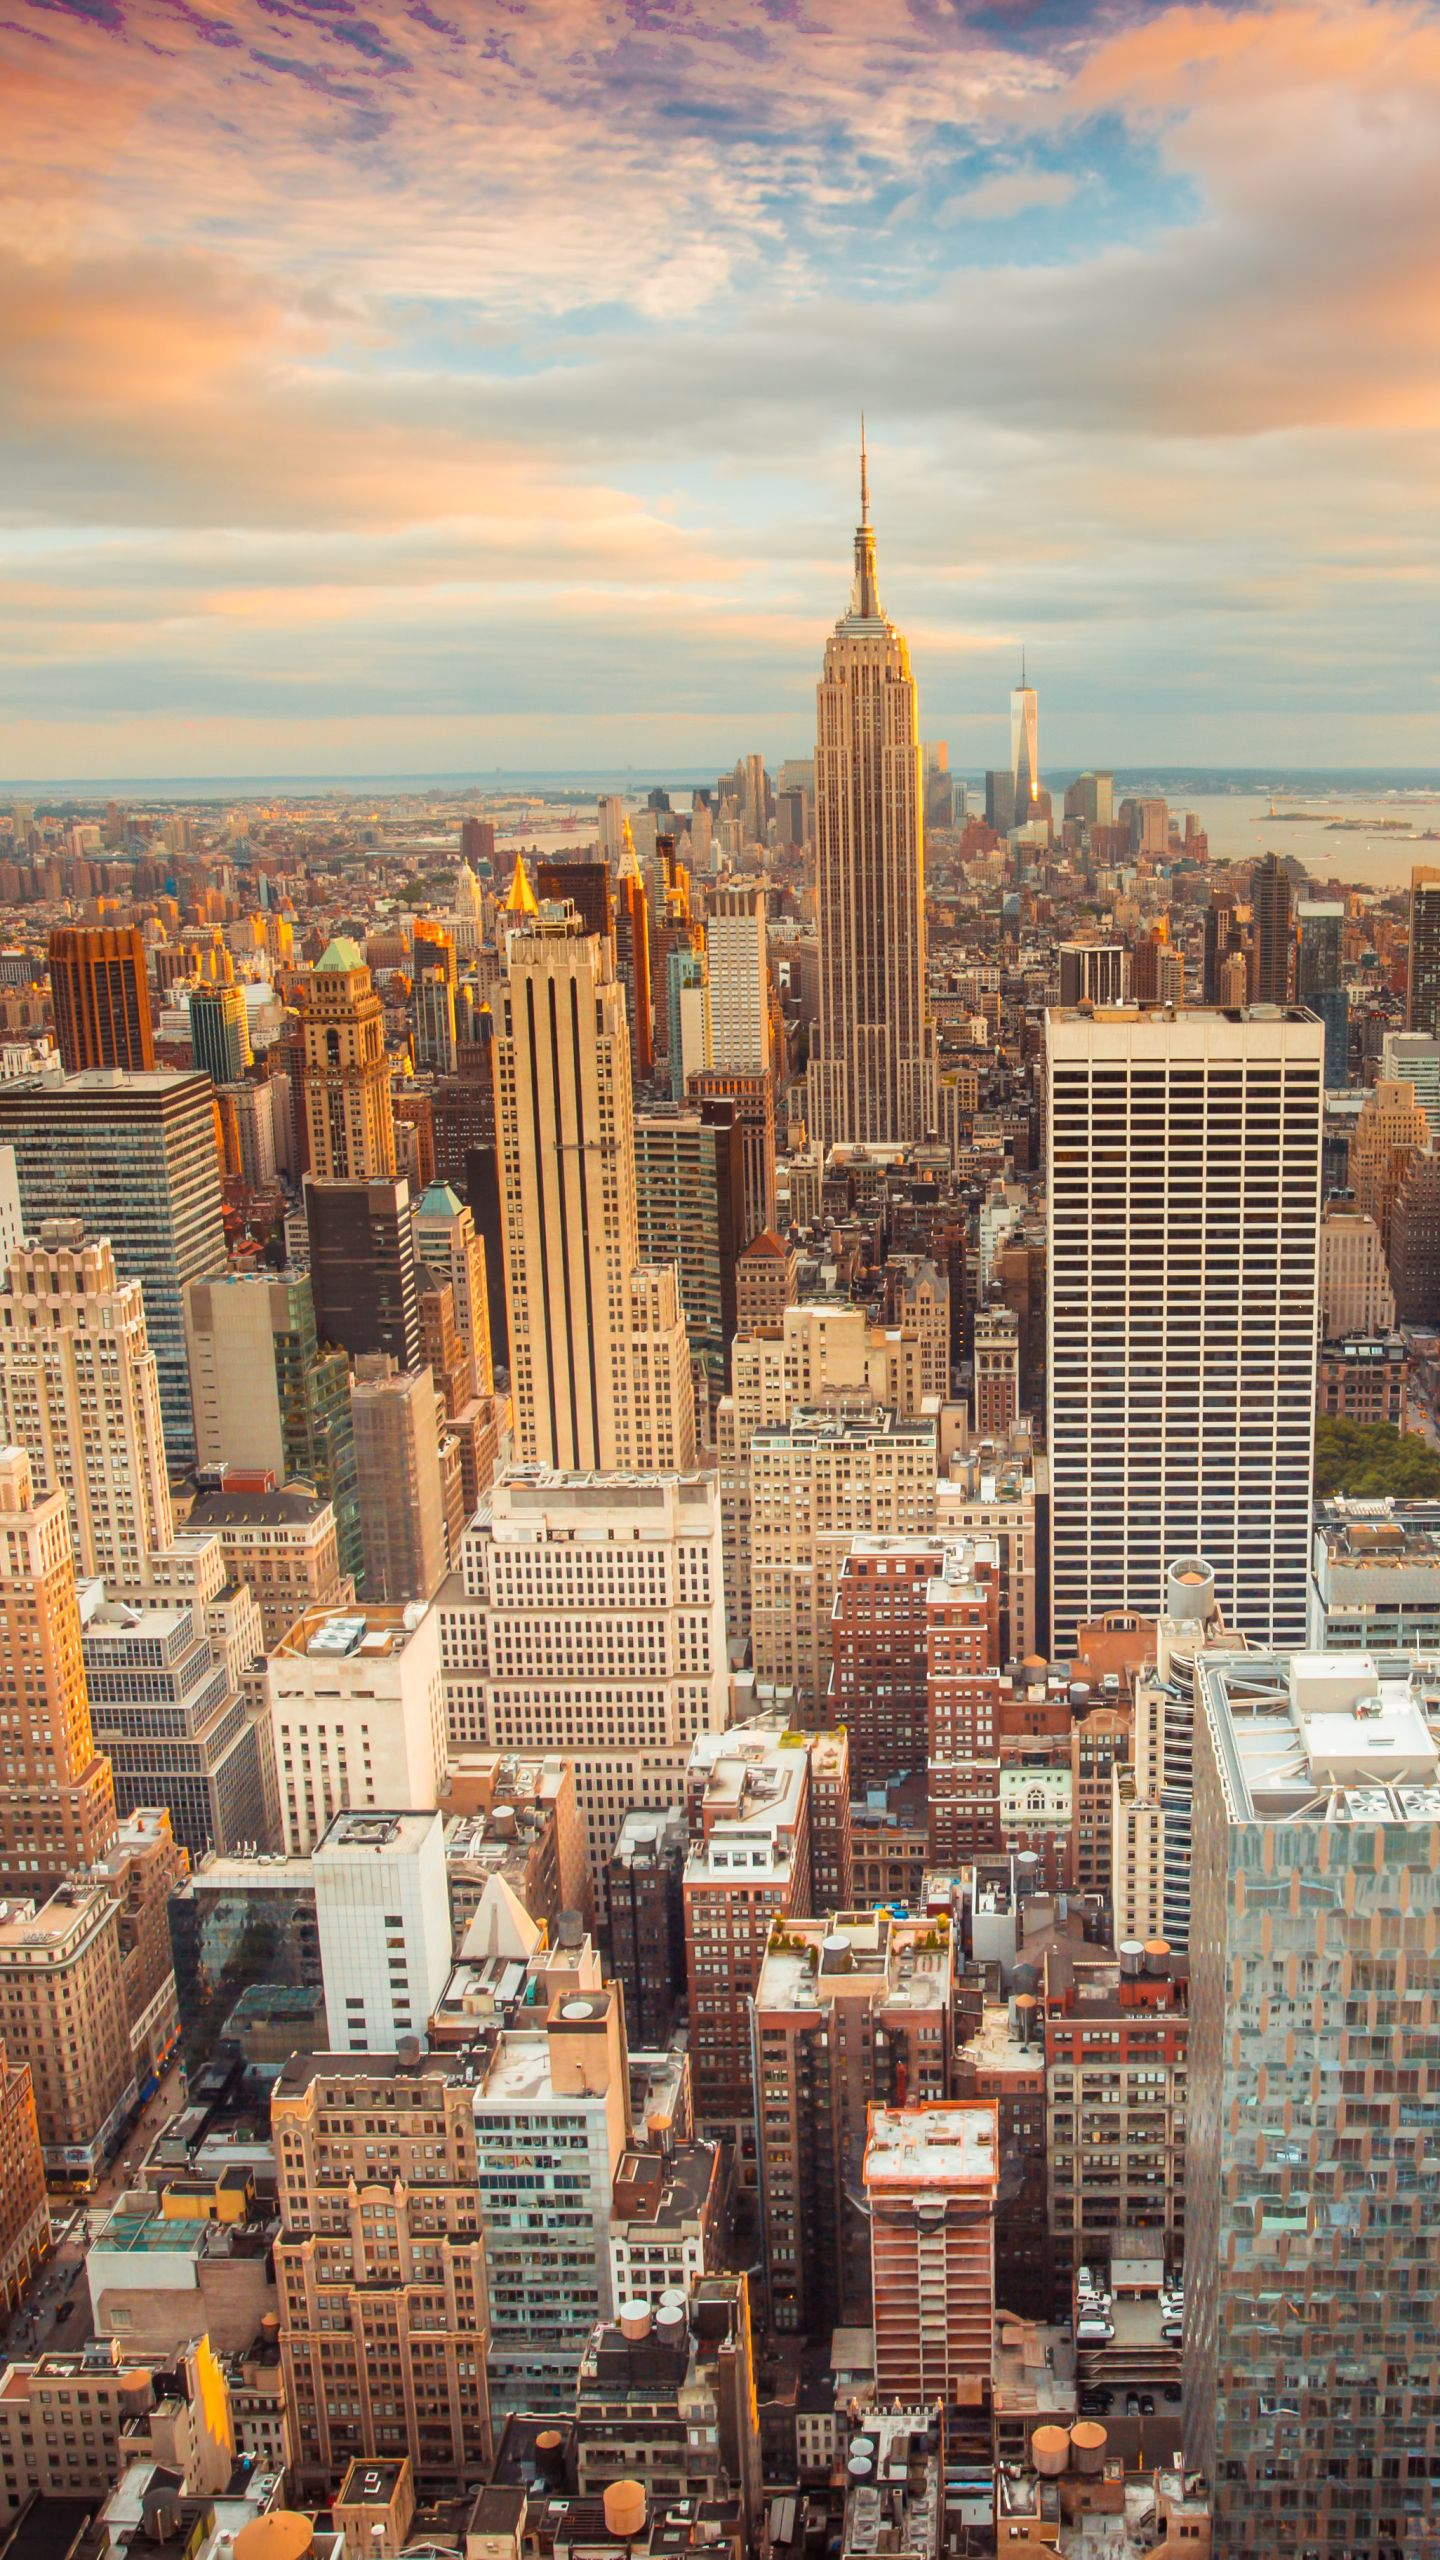 NYC iPhone wallpaper – New York City wallpapers Is Great For Your Phone